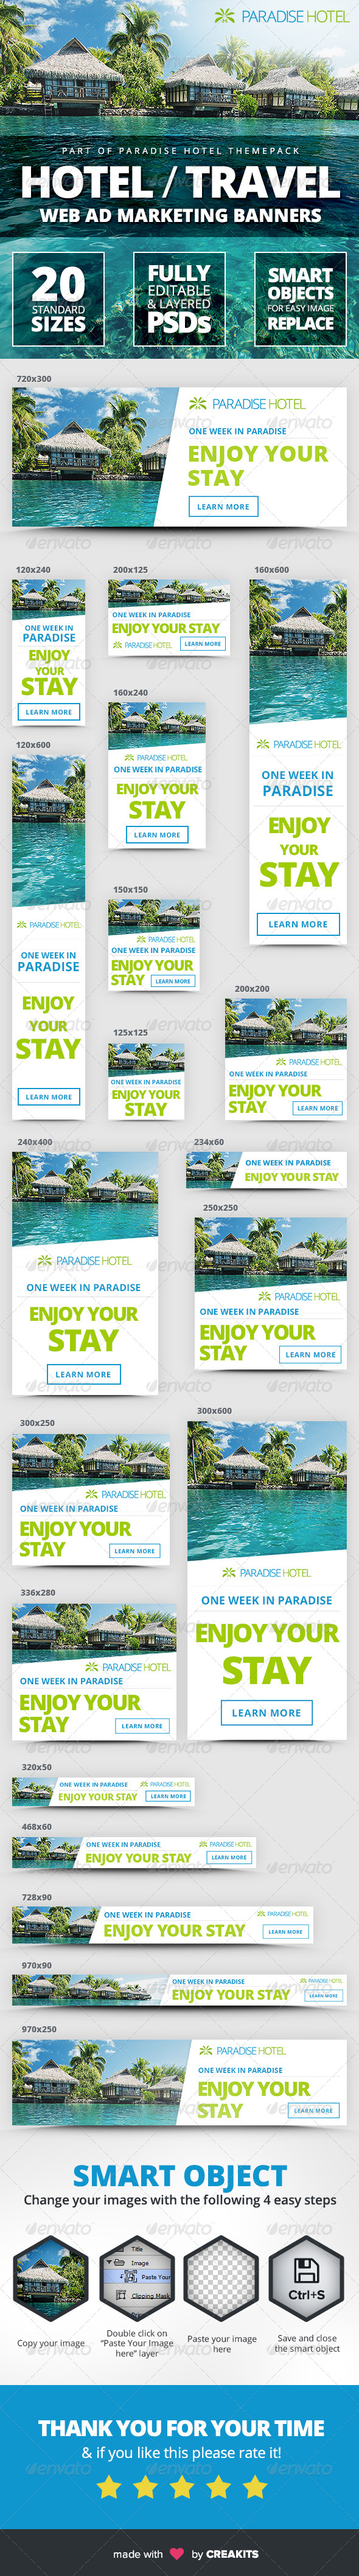 GraphicRiver Hotel Travel Web Ad Marketing Banners 8315608